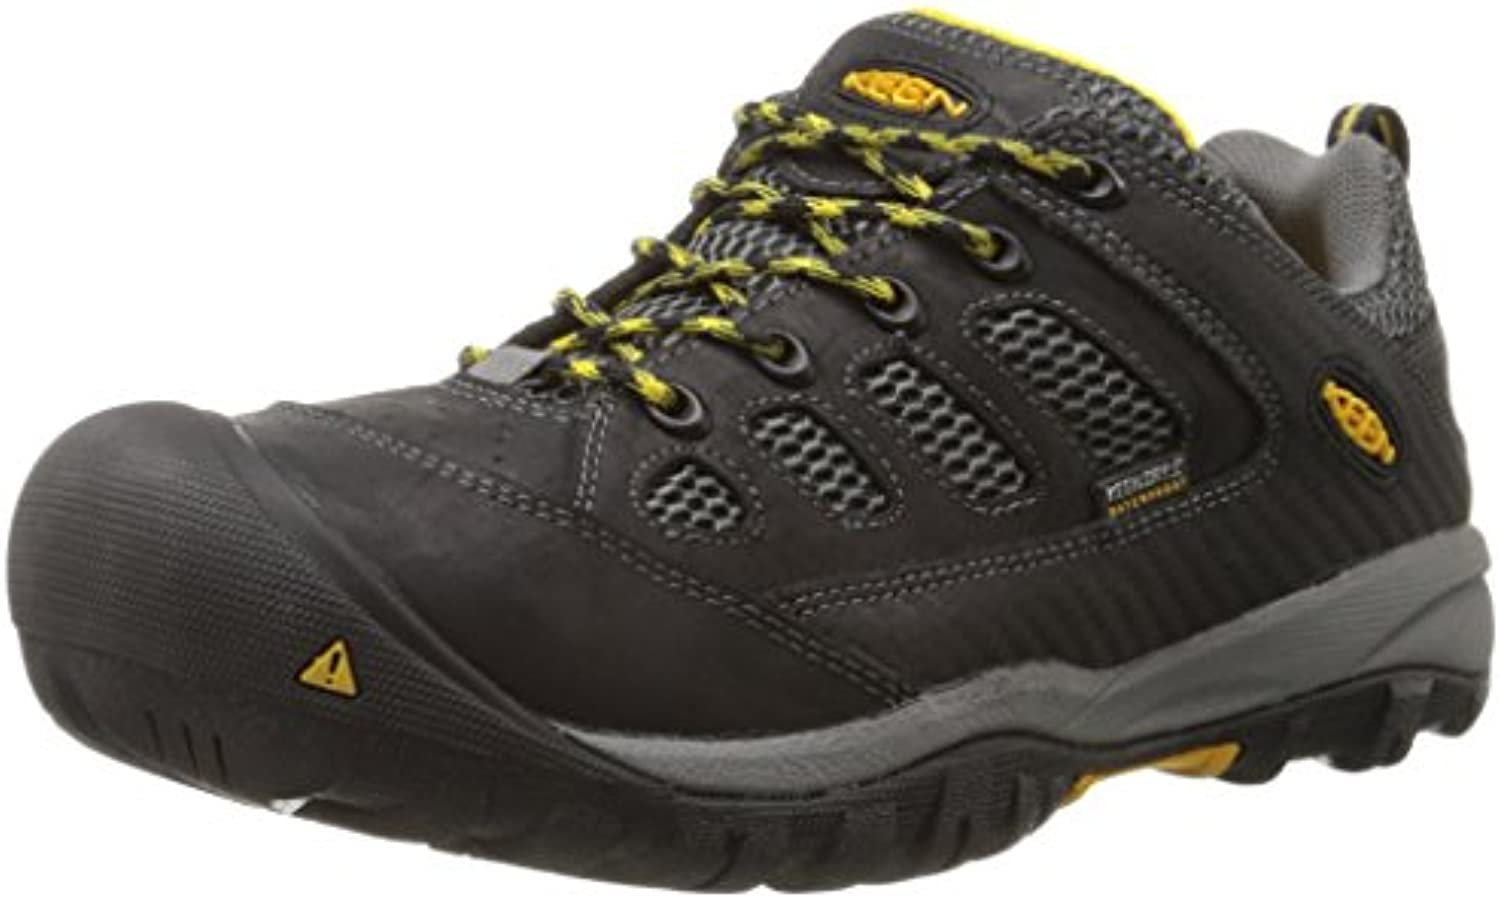 Keen Utility Men's Tucson Low M Work Boot  Black/Gargoyle  11 D US